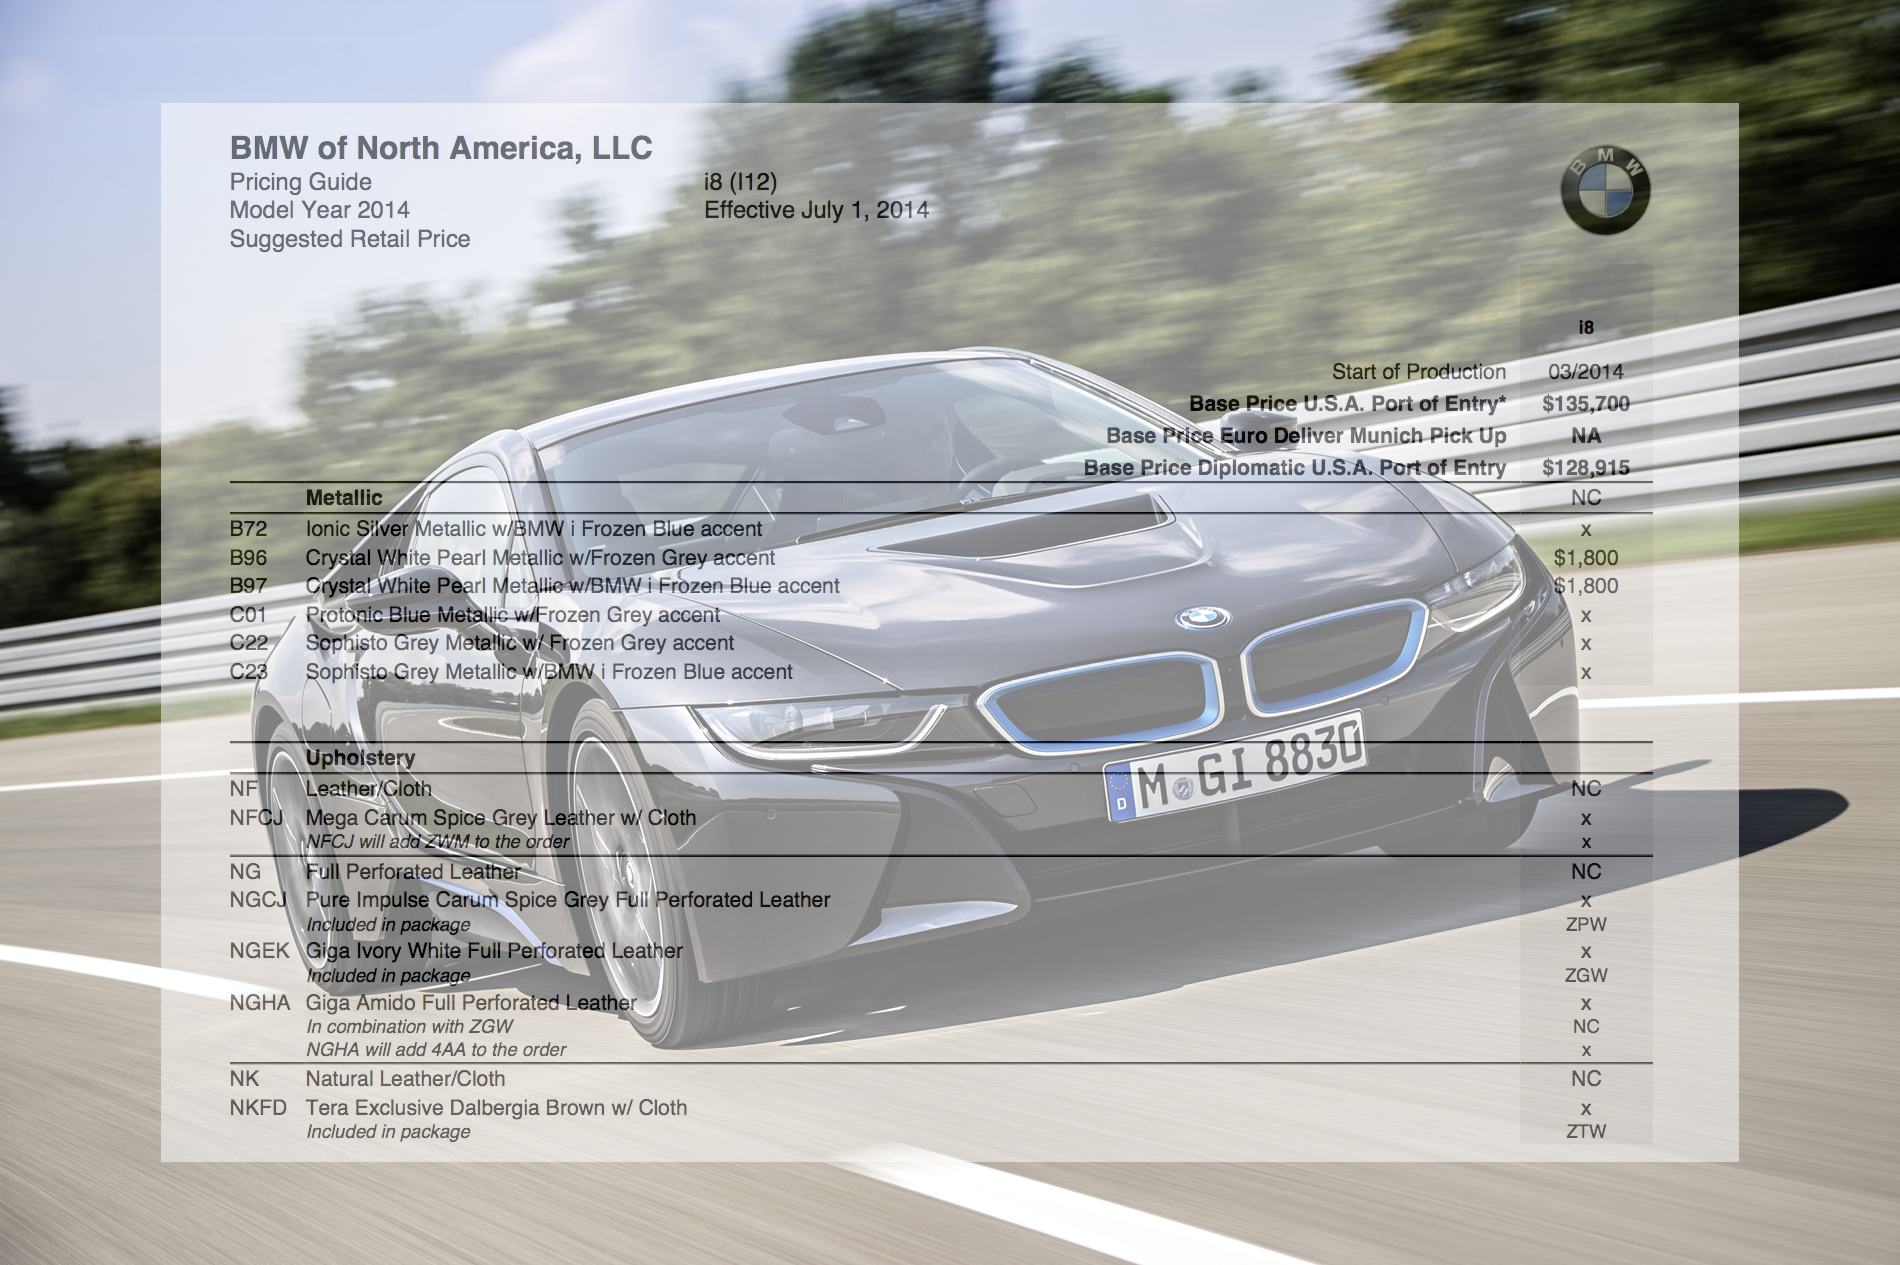 2015 BMW i8 Pricing Guide